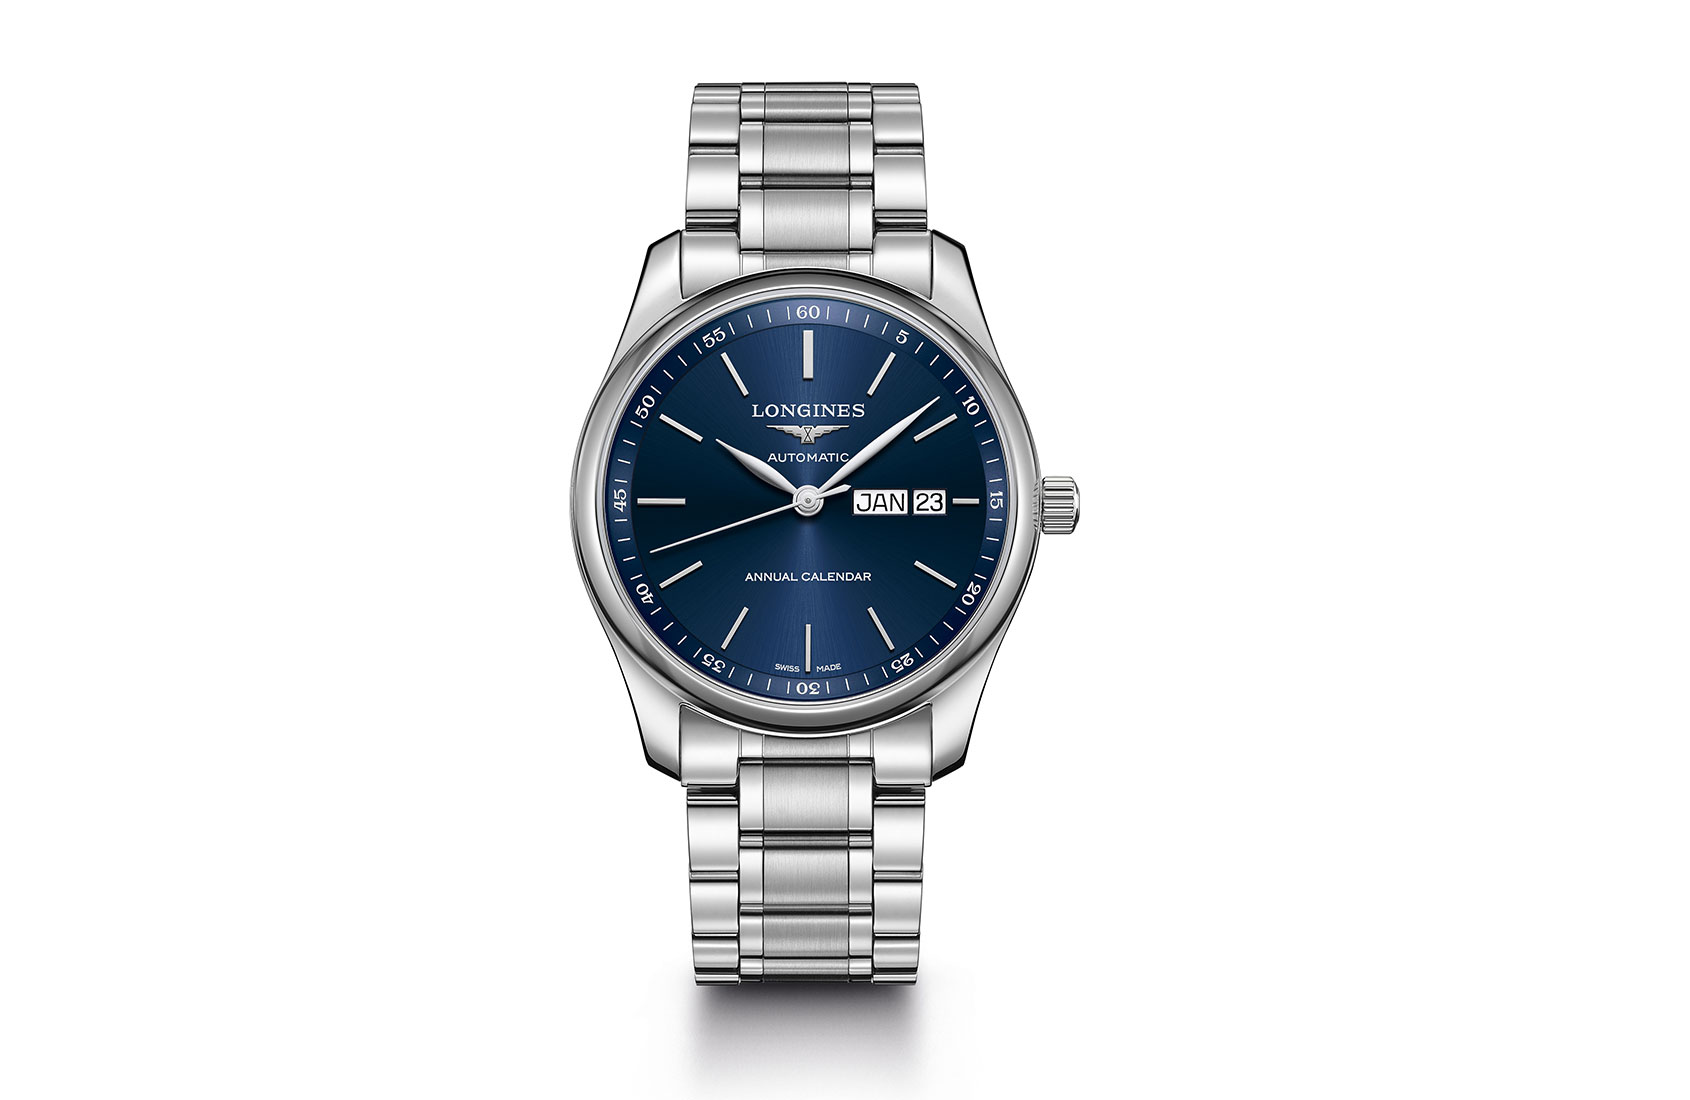 INTRODUCING: The Longines Master Collection Annual Calendar, their first ever annual calendar